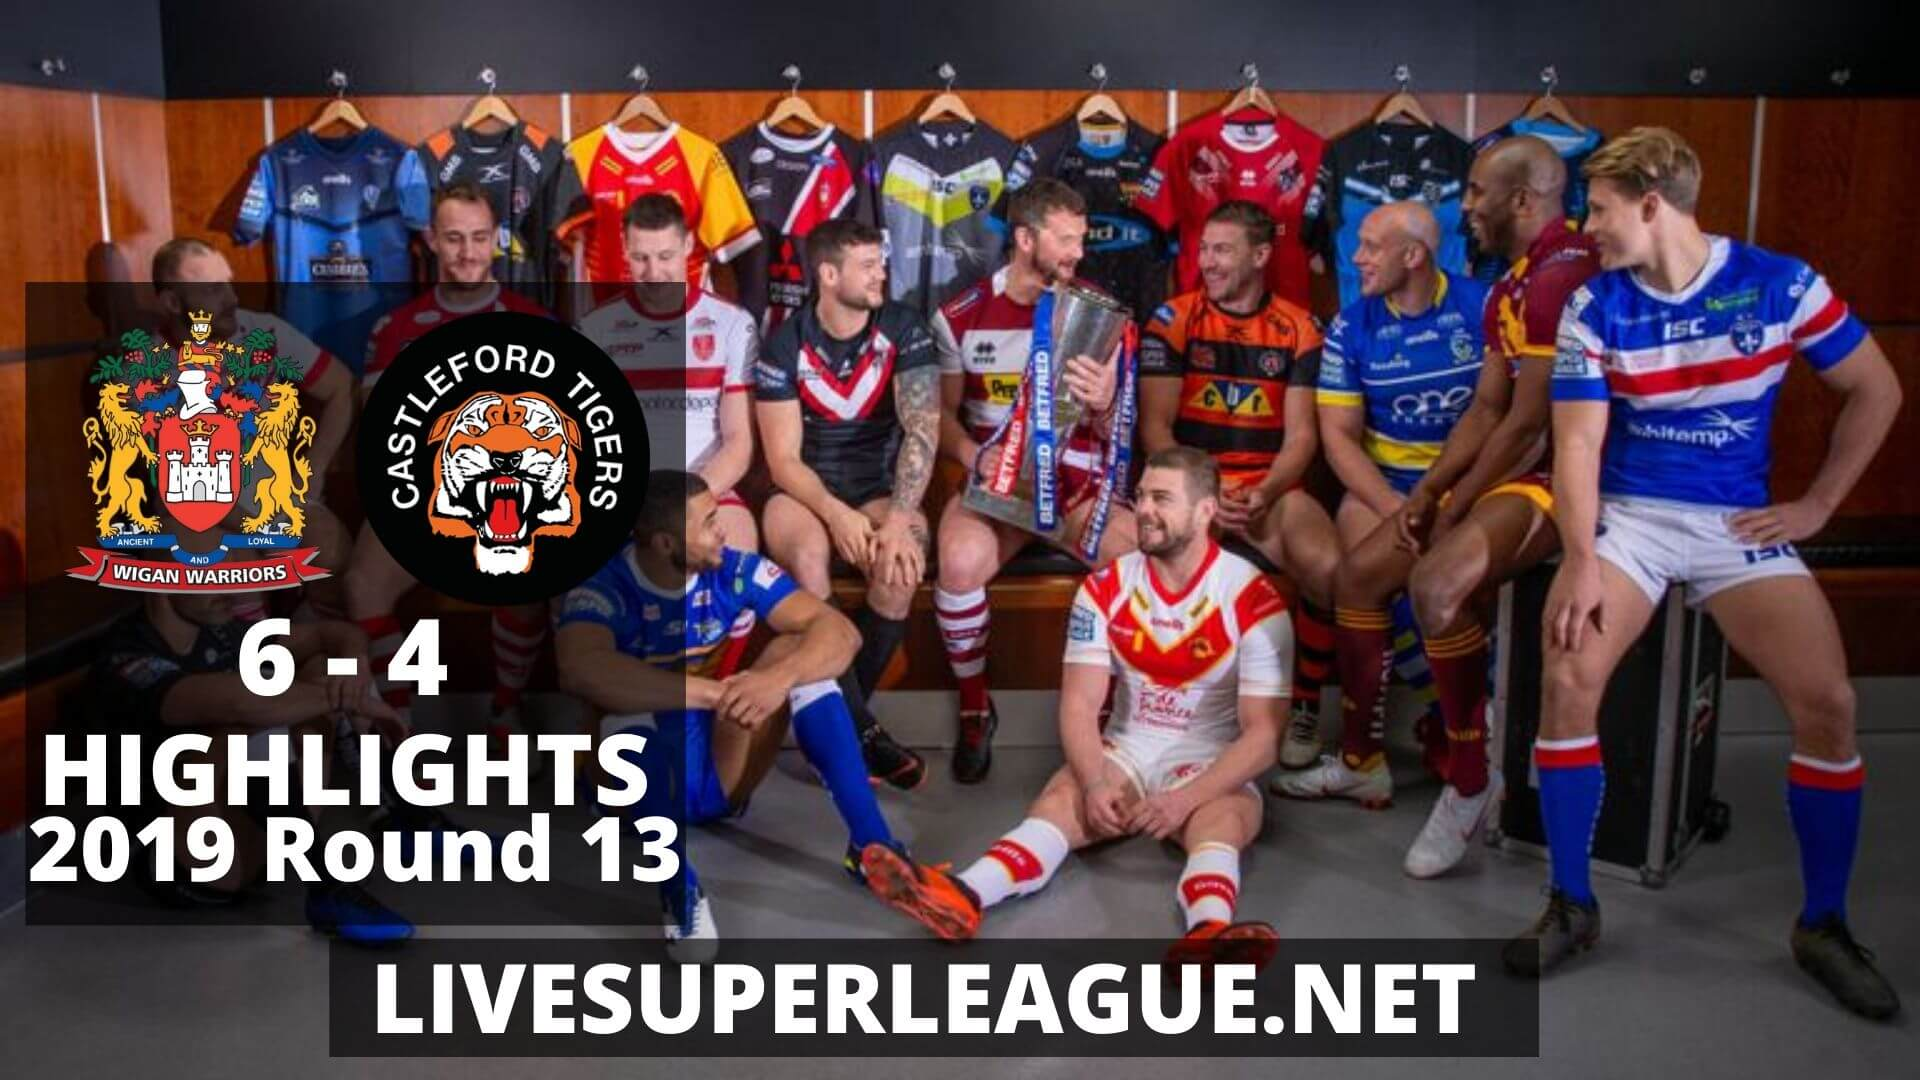 Wigan Warriors Vs Castleford Tigers Highlights 2019 Round 13